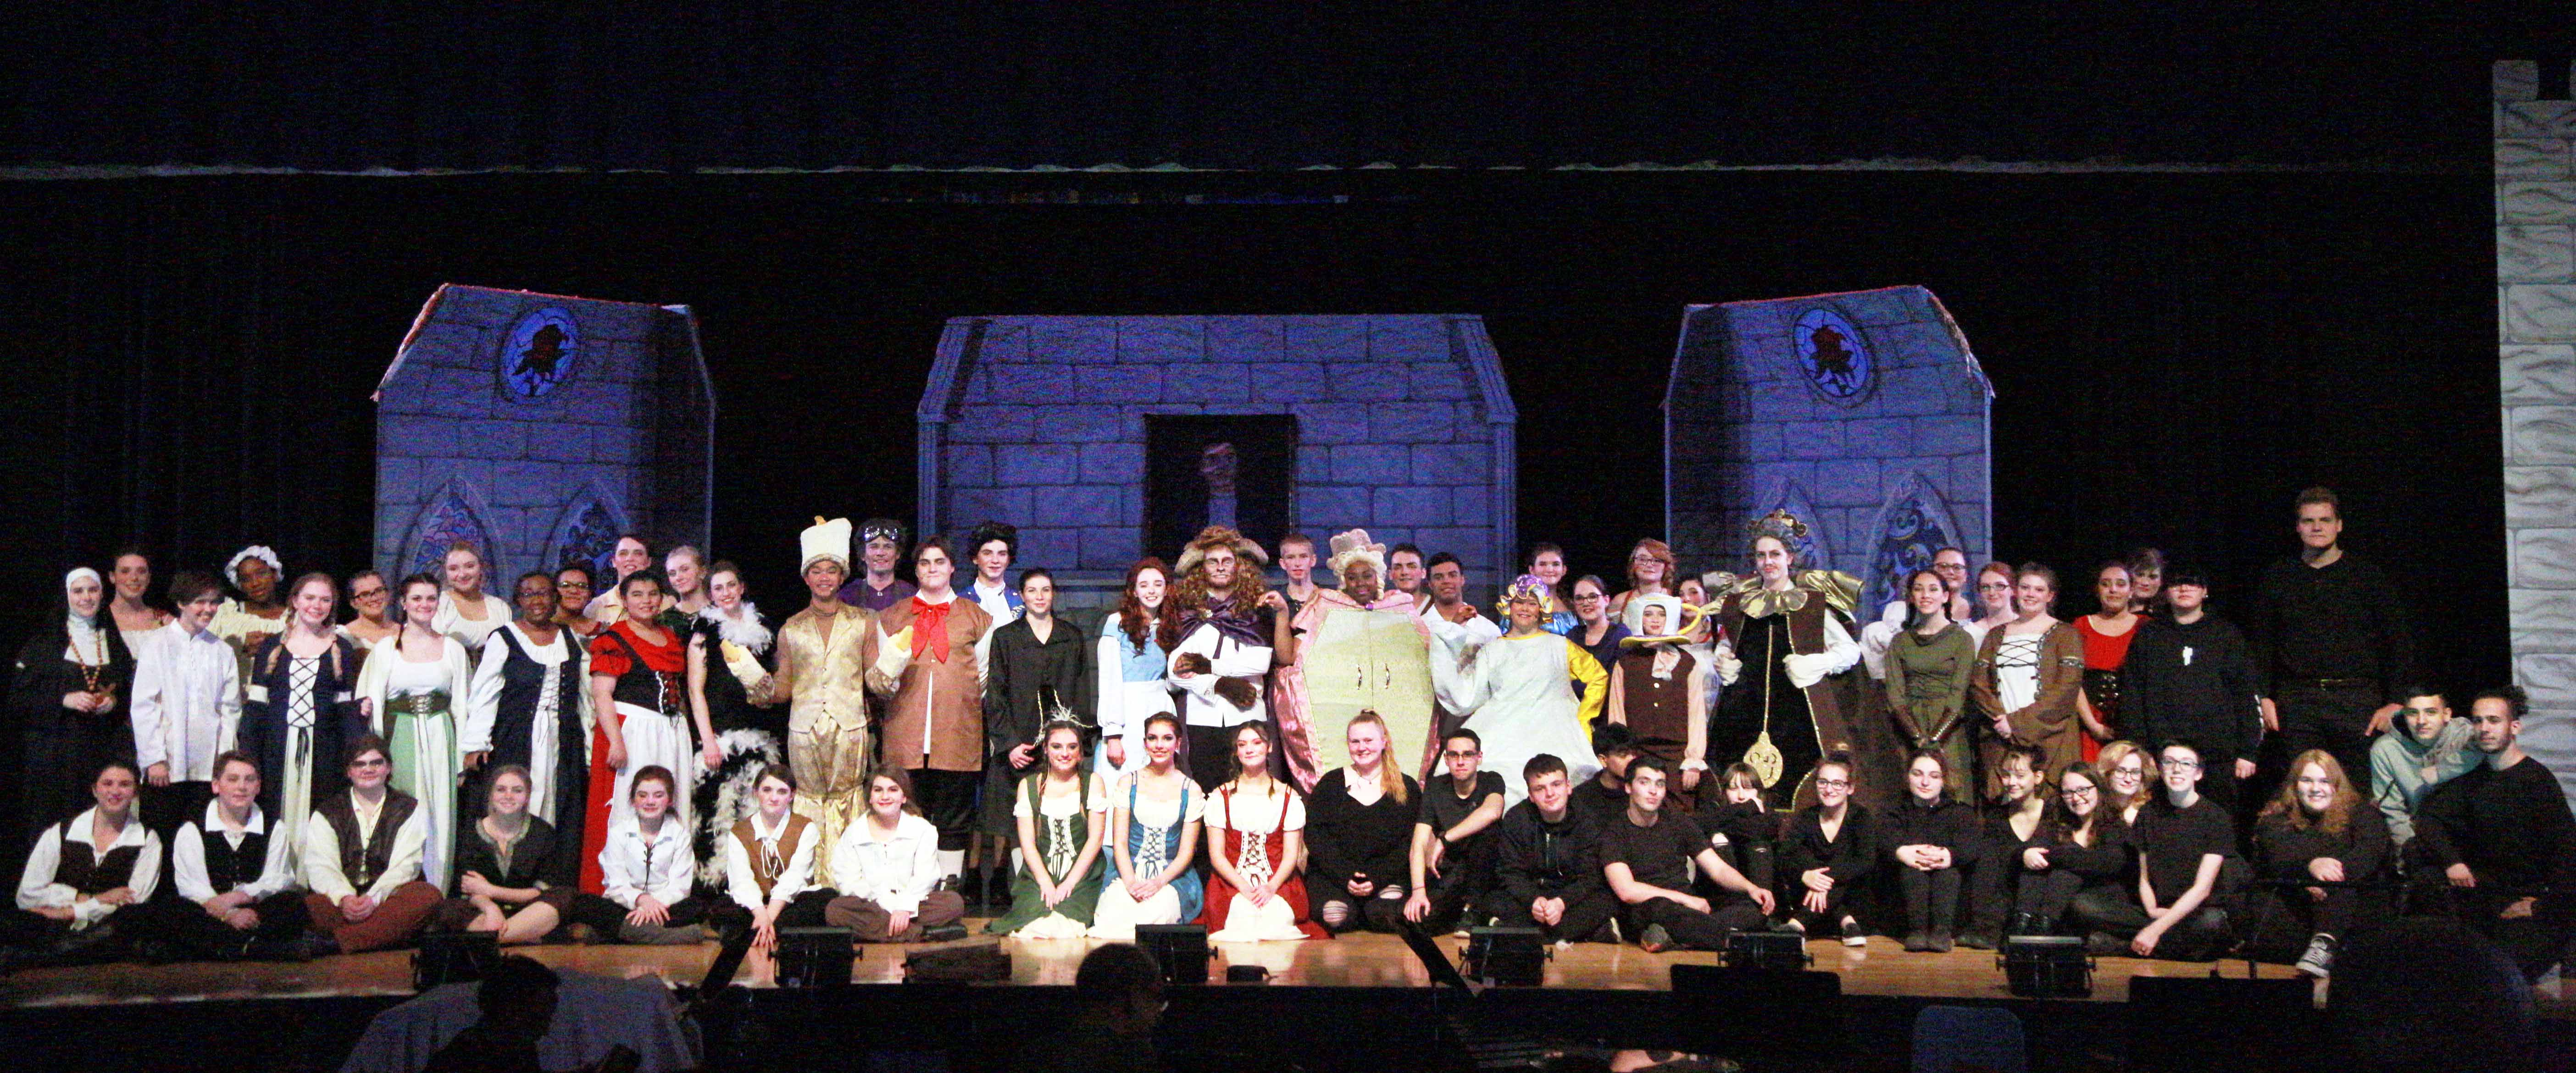 Cast and crew of Bueaty and the Beast